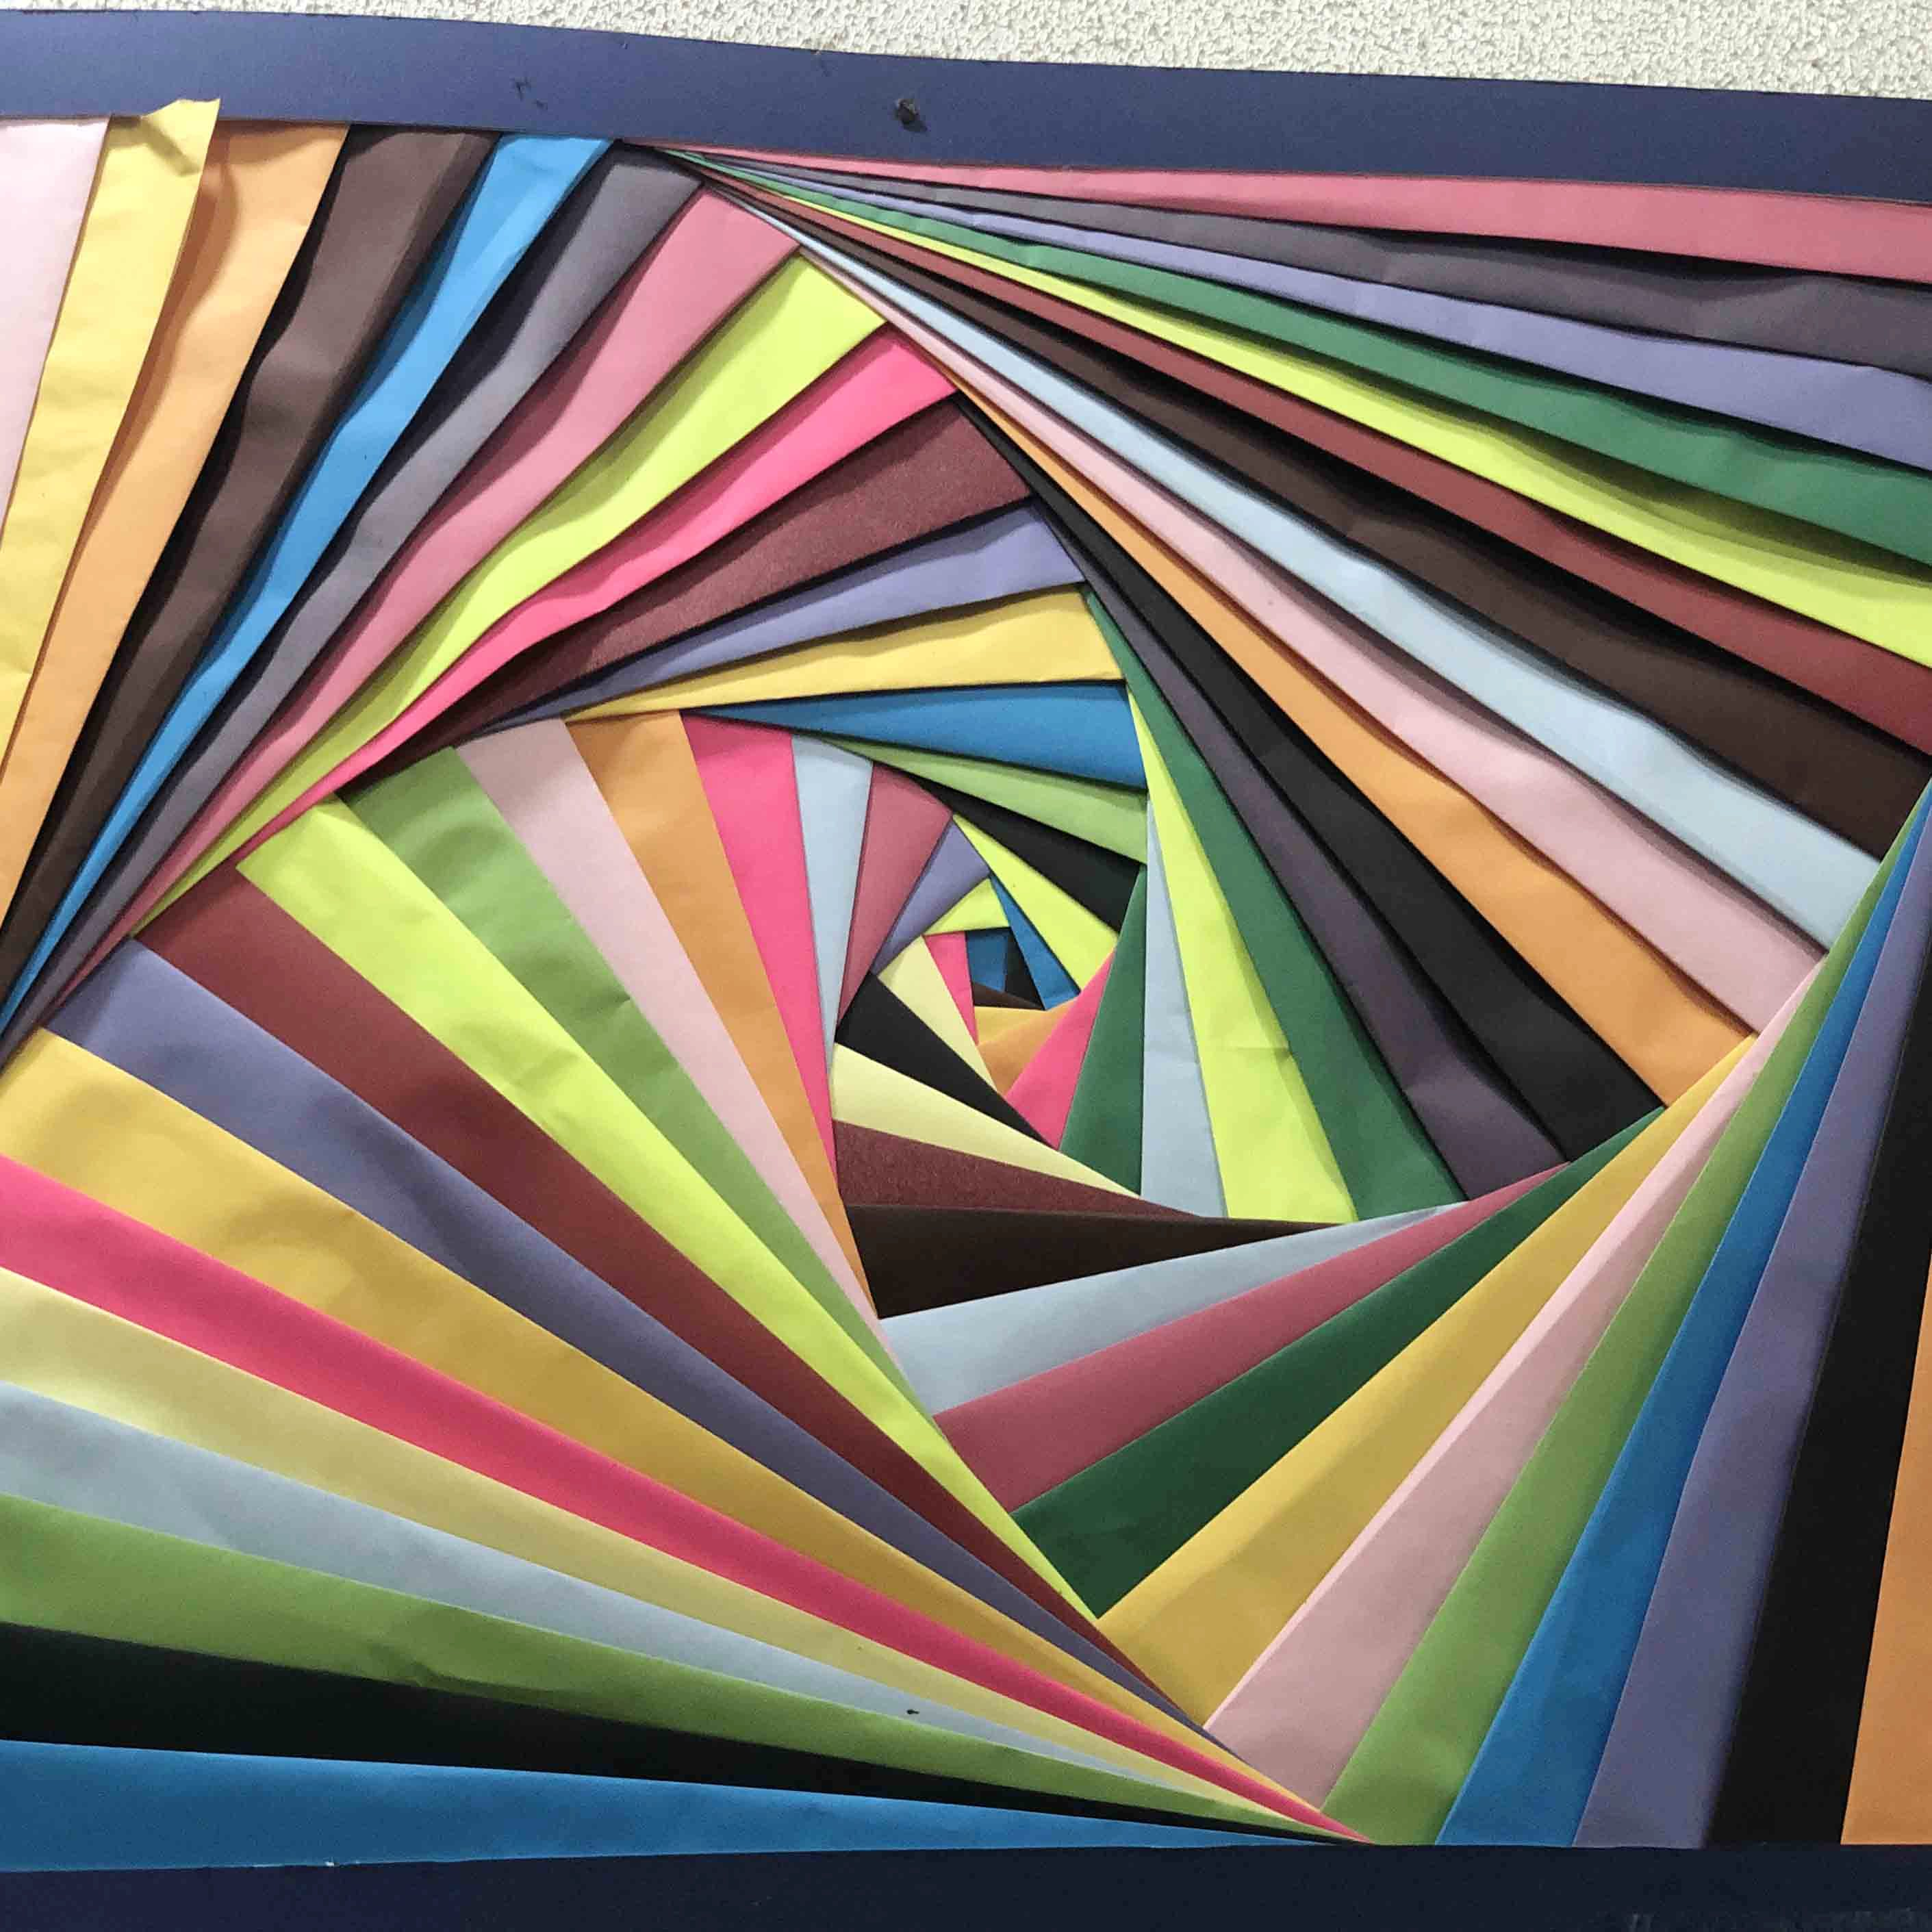 Line,Triangle,Textile,Art,Visual arts,Tints and shades,Modern art,Pattern